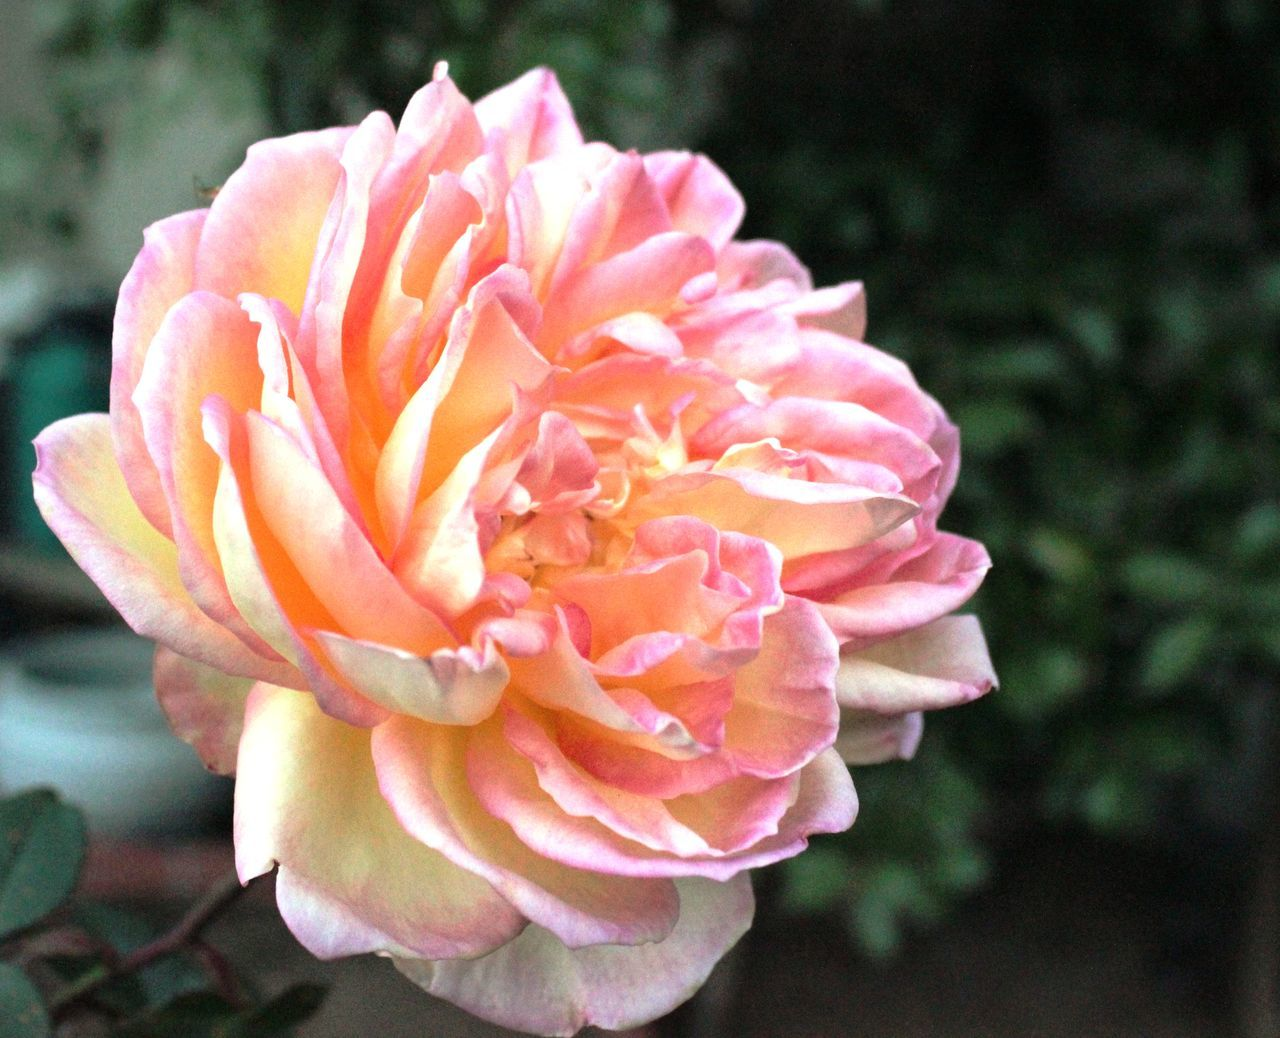 pastel power! Pastel Colors Paste Colored Rose Bursting Bursting With Colors Full Bloom Rose Shaggy Dog Sweet Smell Of A Rose Yellow And Pink Rose 🌹 Yellow Rose With Pink Tink ti